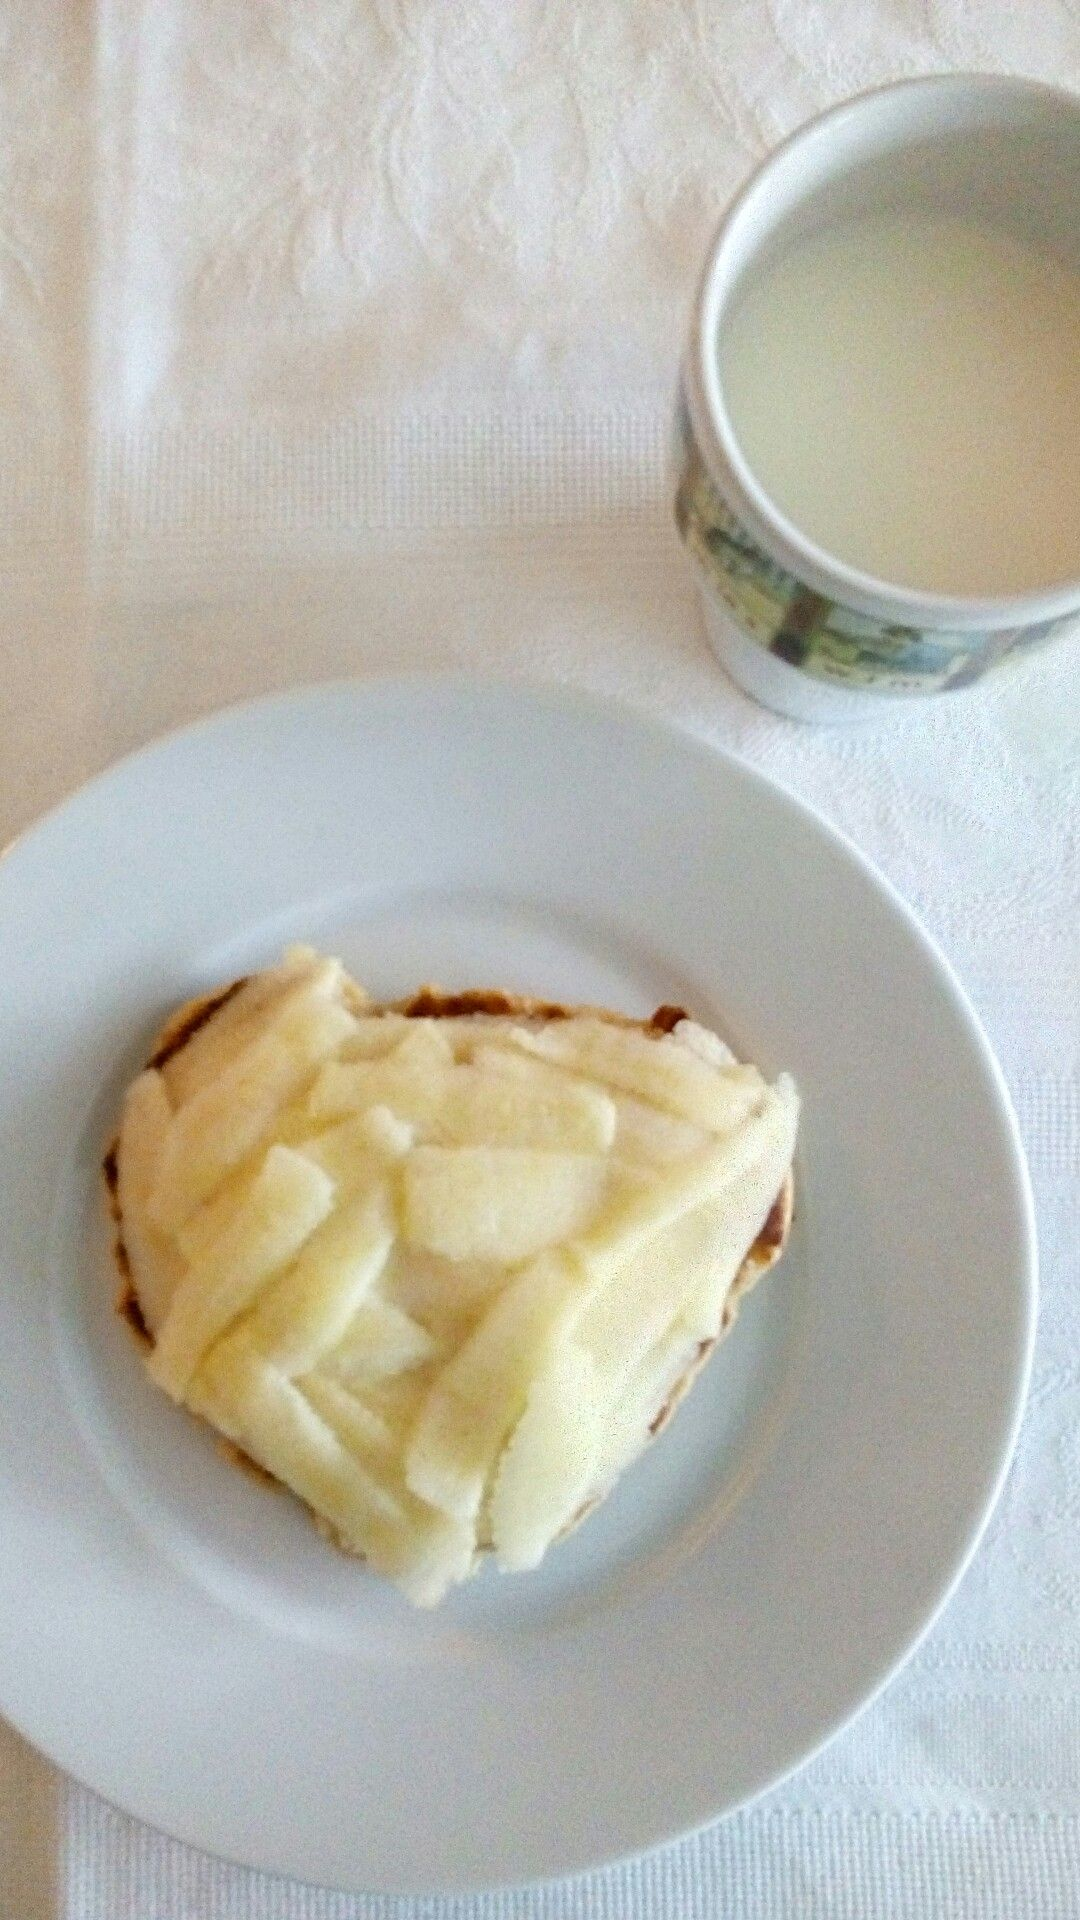 Delicious breakfast with selfbaked matze and apple